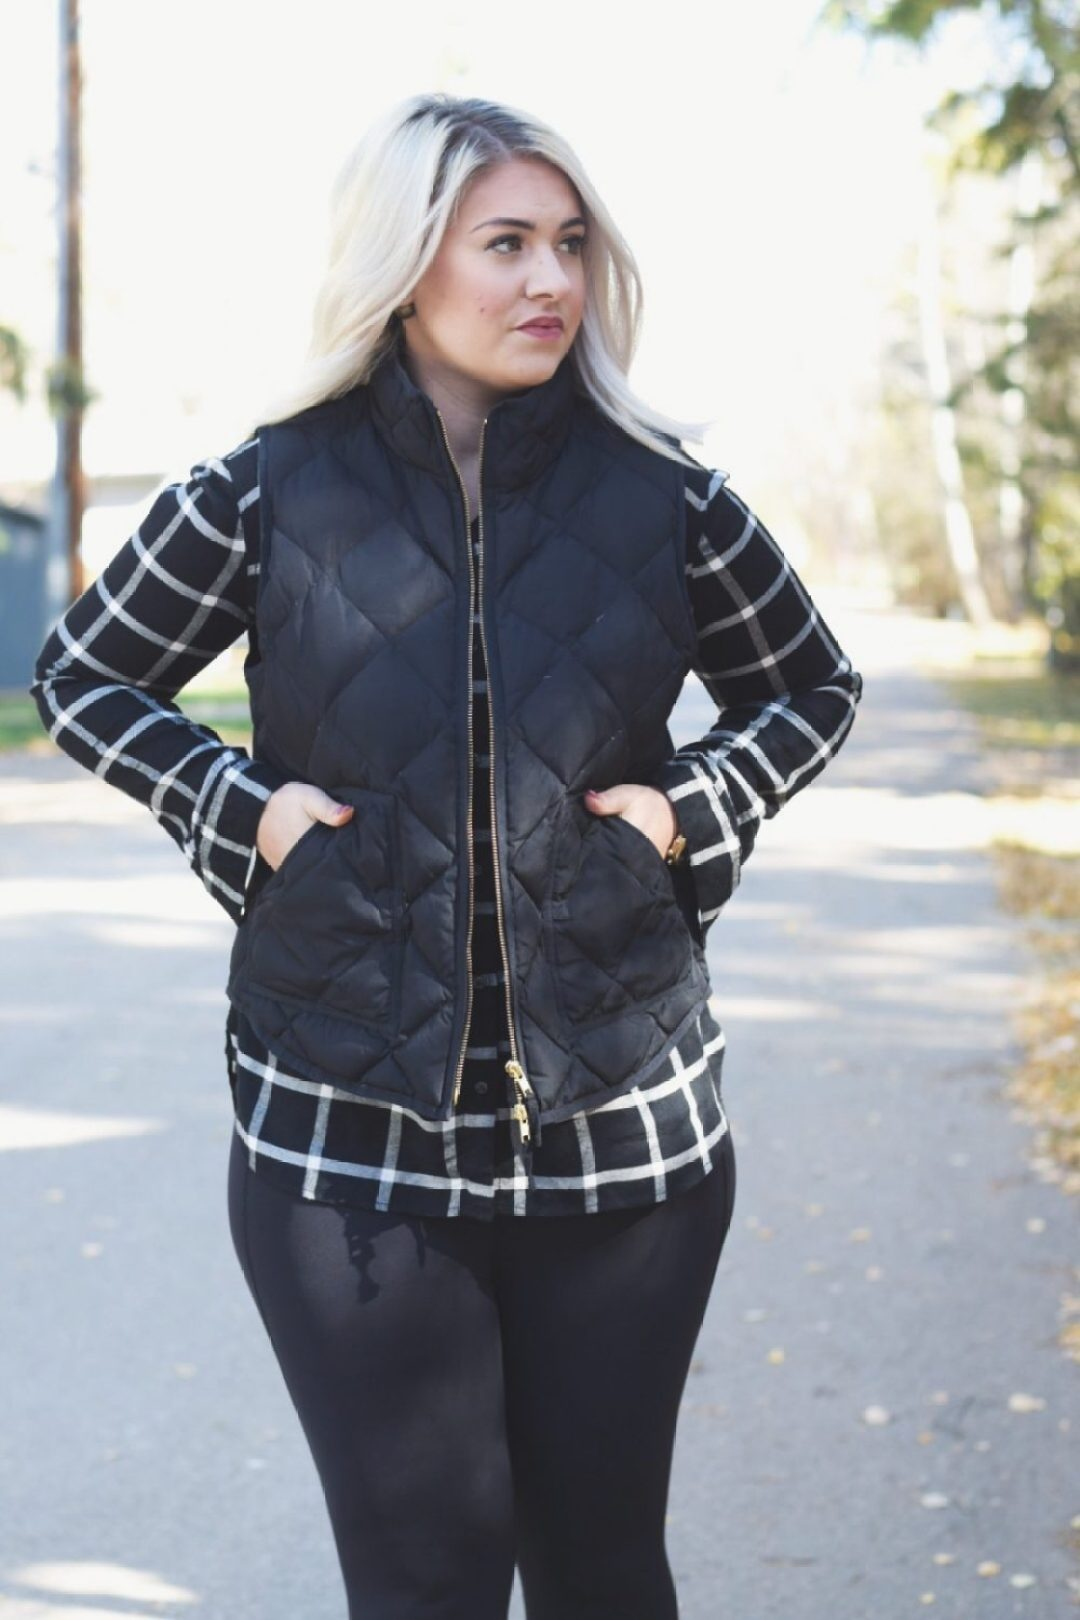 Plaid shirt and puffer vest outfit